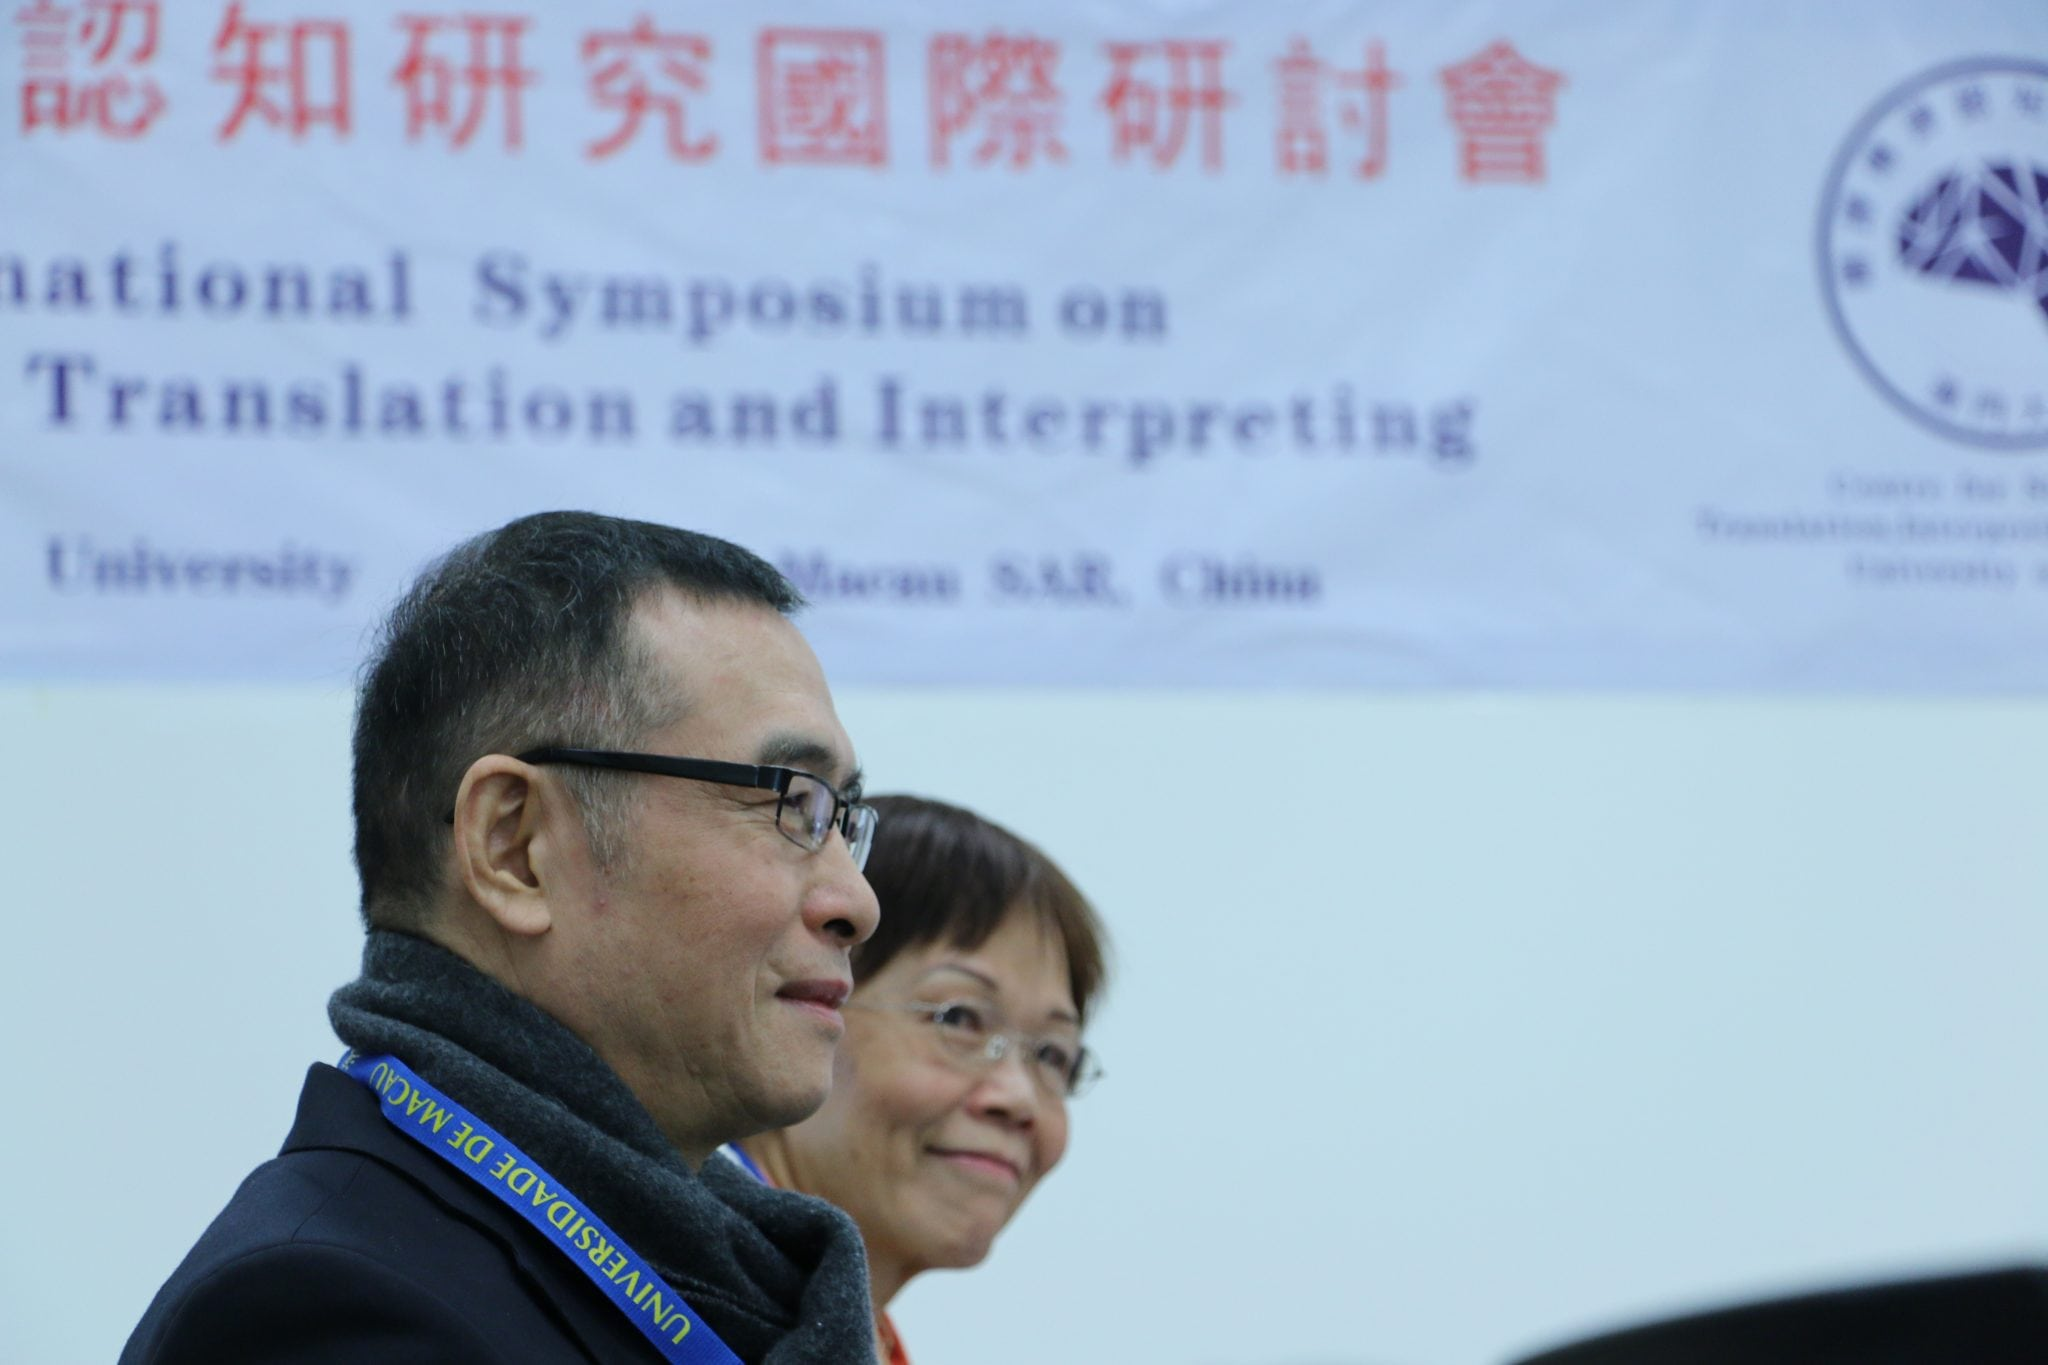 CSTIC holds the 1st International Symposium on Cognitive Research on Translation and Interpreting